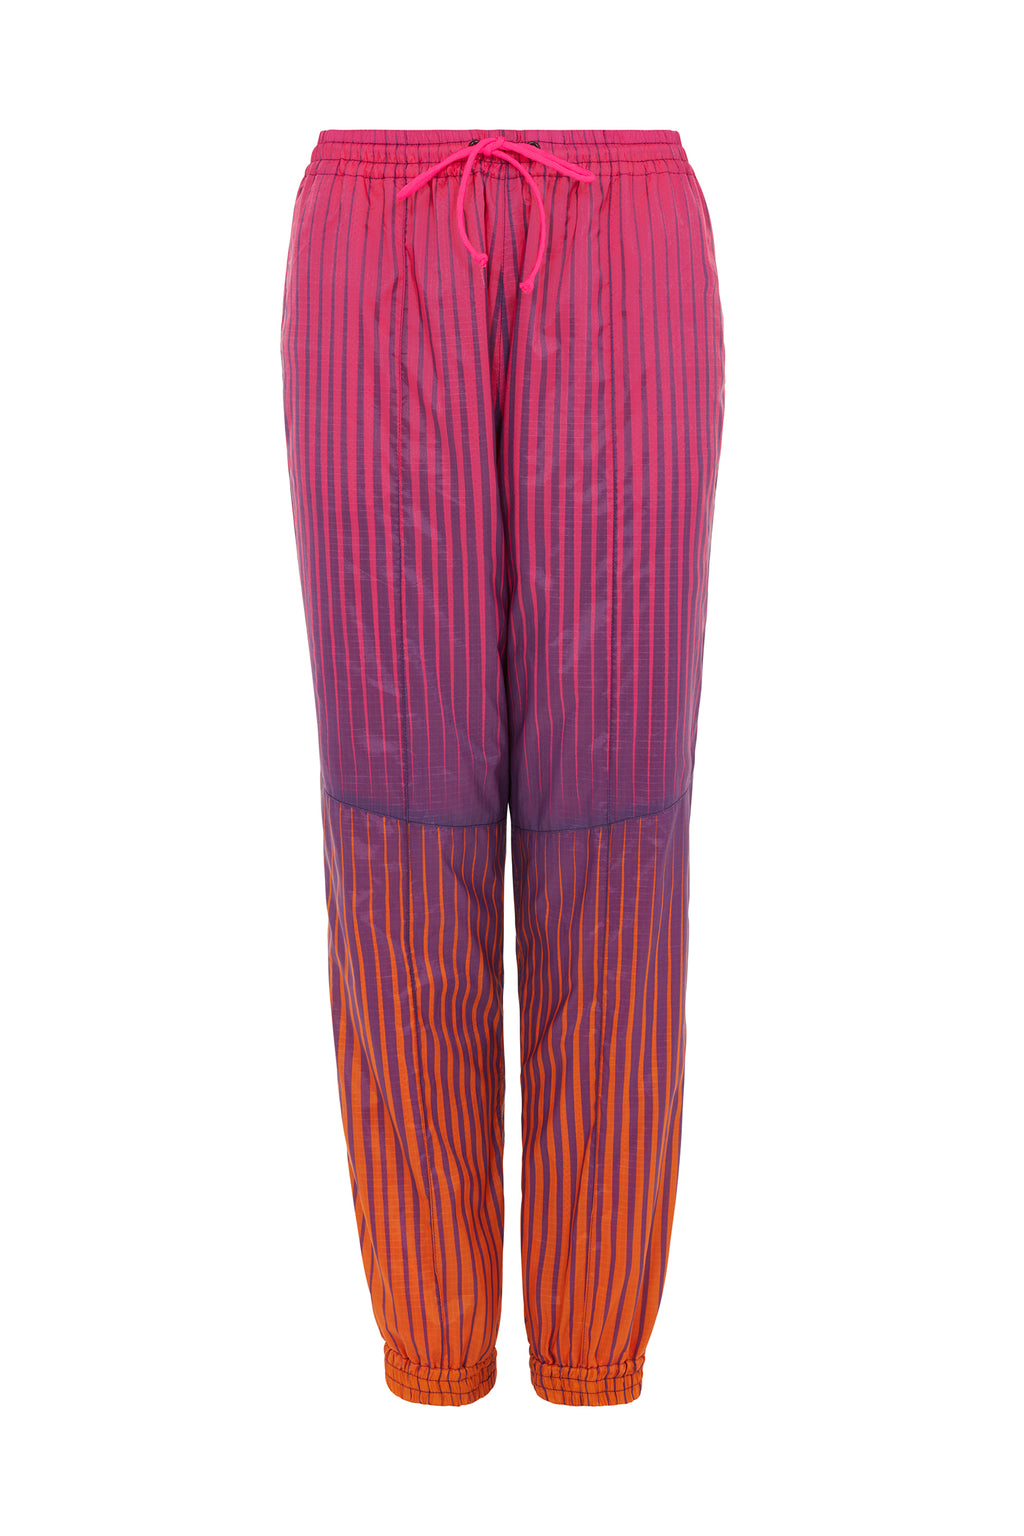 Andrew Brischler Print Track Pant (Pink & Orange) by House of Holland